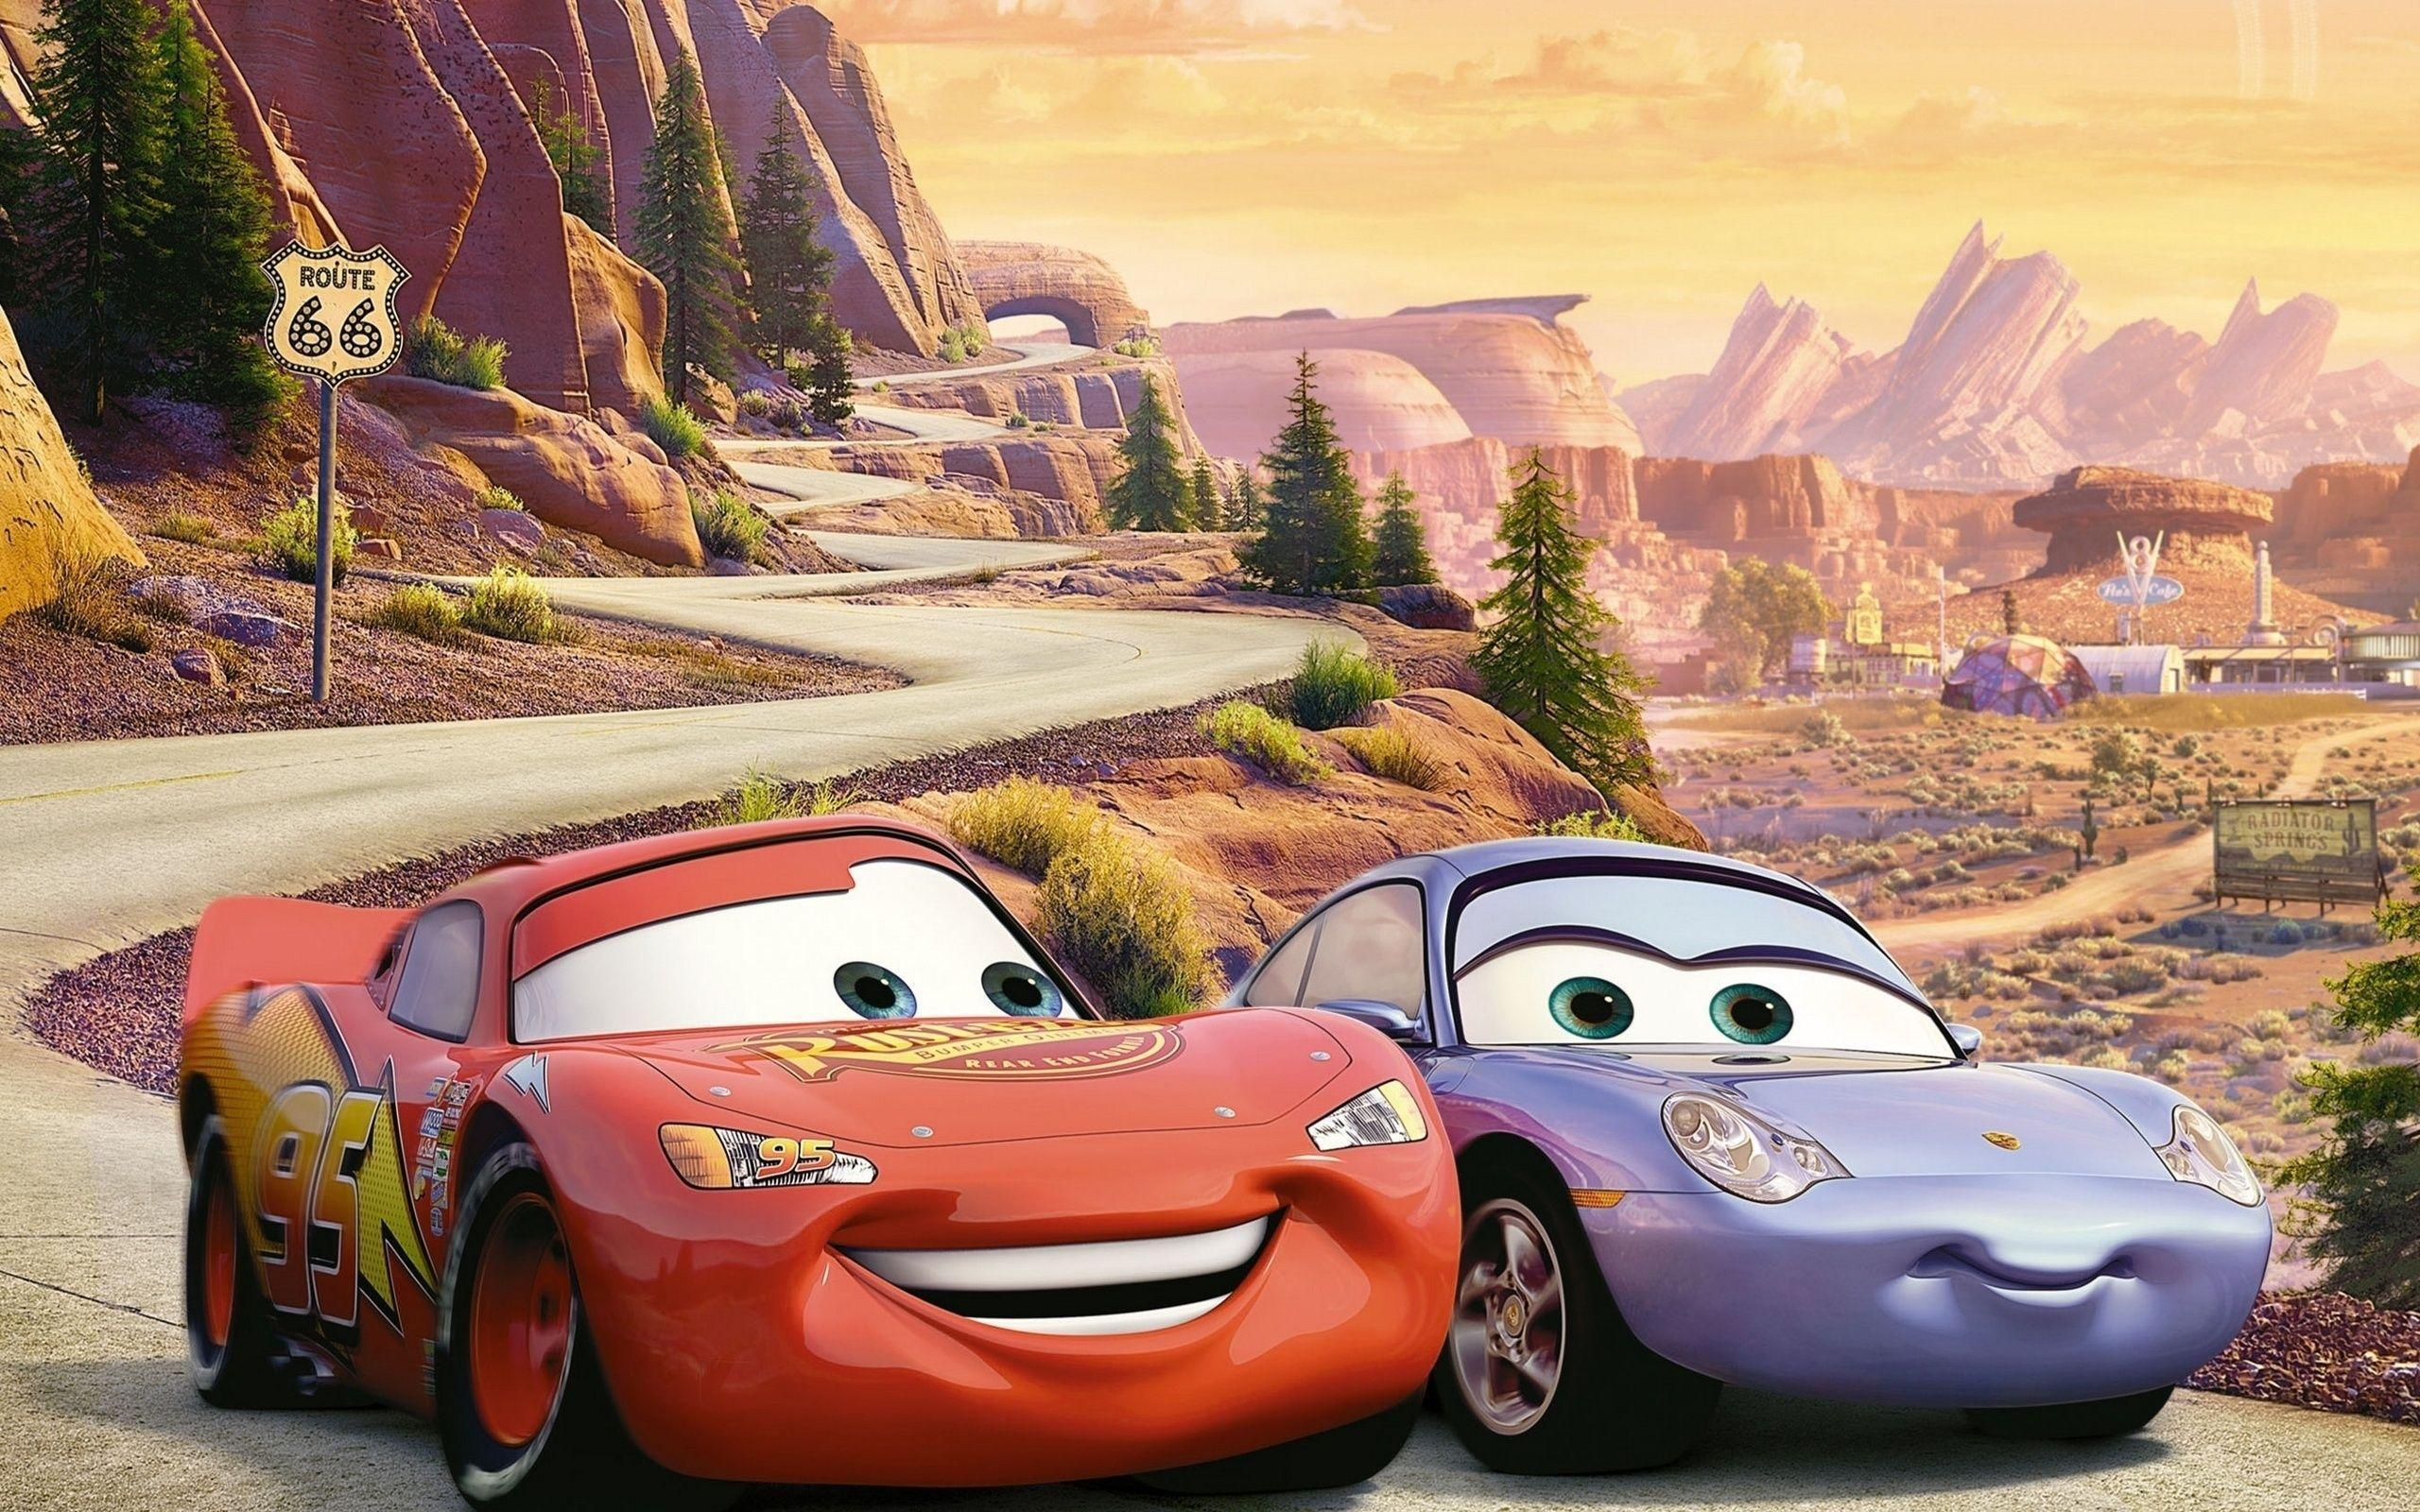 disney cars hd wallpapers - photo #7